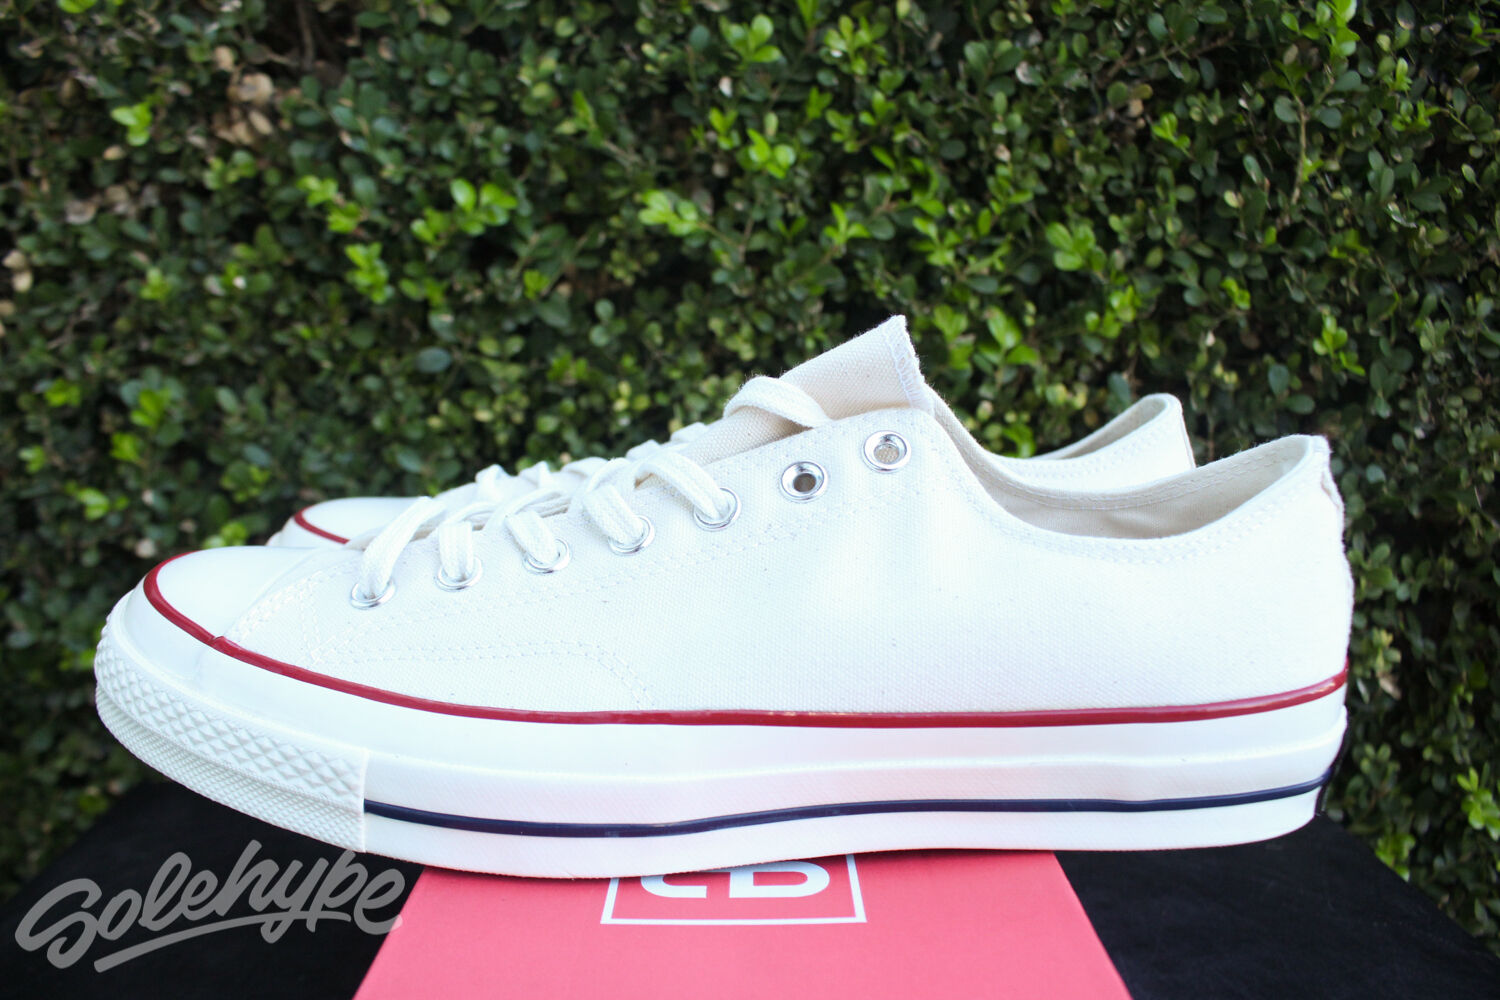 CONVERSE CHUCK TAYLOR ALL STAR 70 OX SZ 11.5 PARCHMENT OXFORD CT 1970 FS 142338C